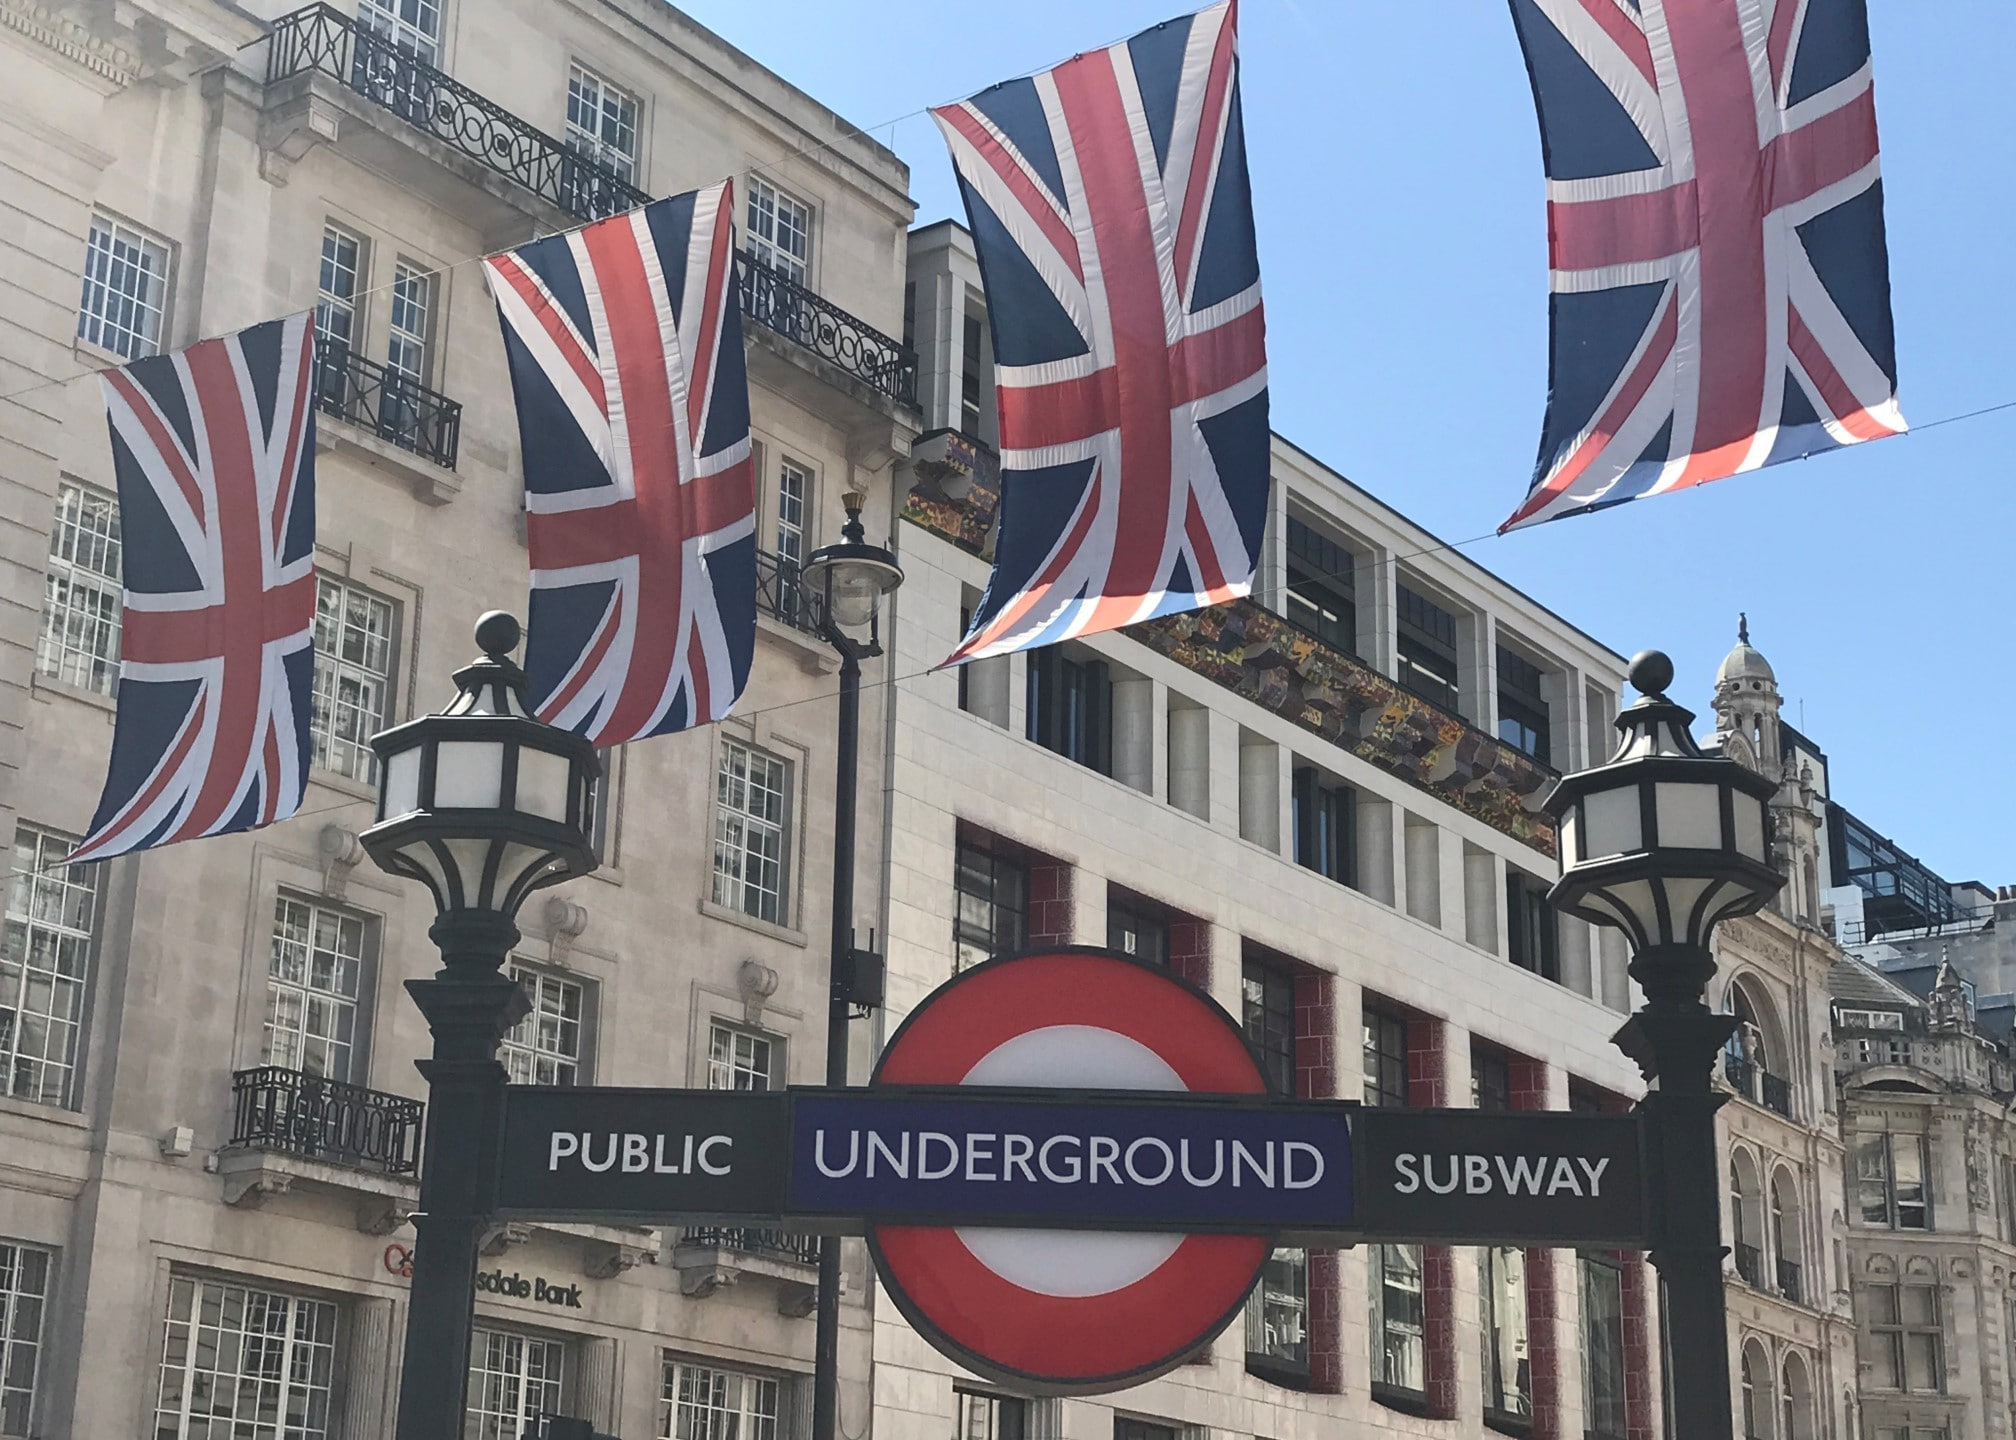 London flags and underground